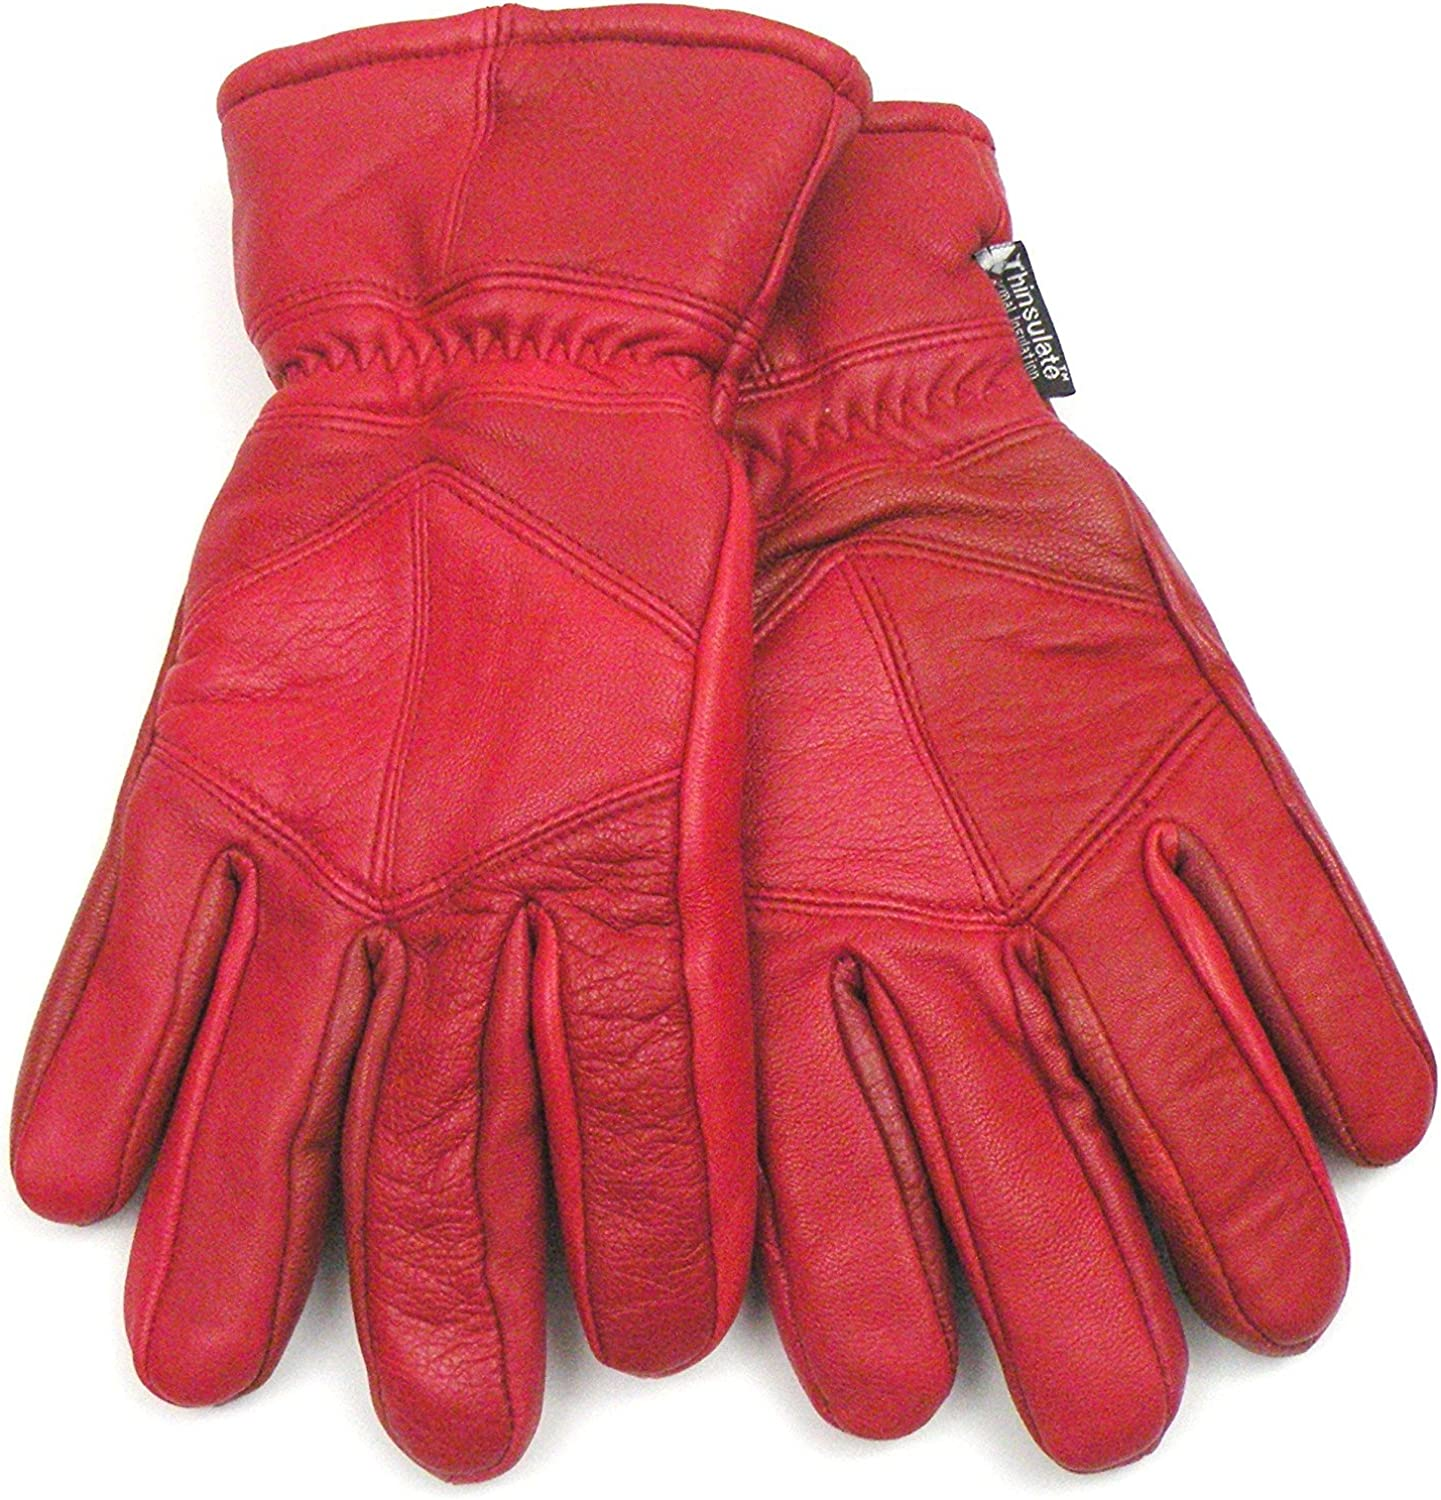 Red Thinsulate Lined Leather Gloves Size Large